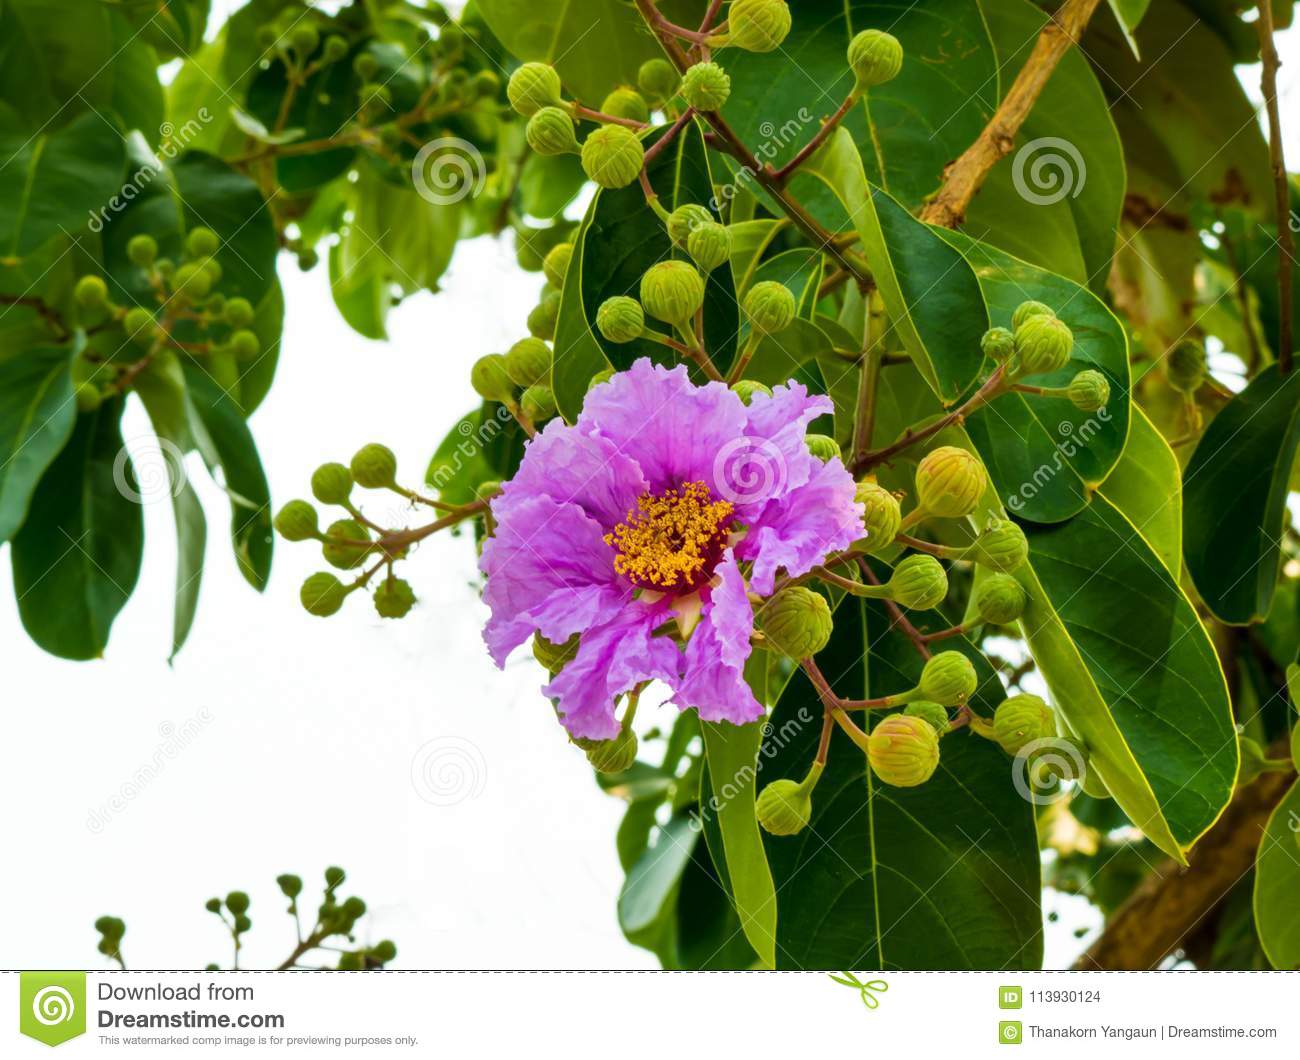 Lagerstroemia Flower With Green Leaveslocal Tree Growing On The